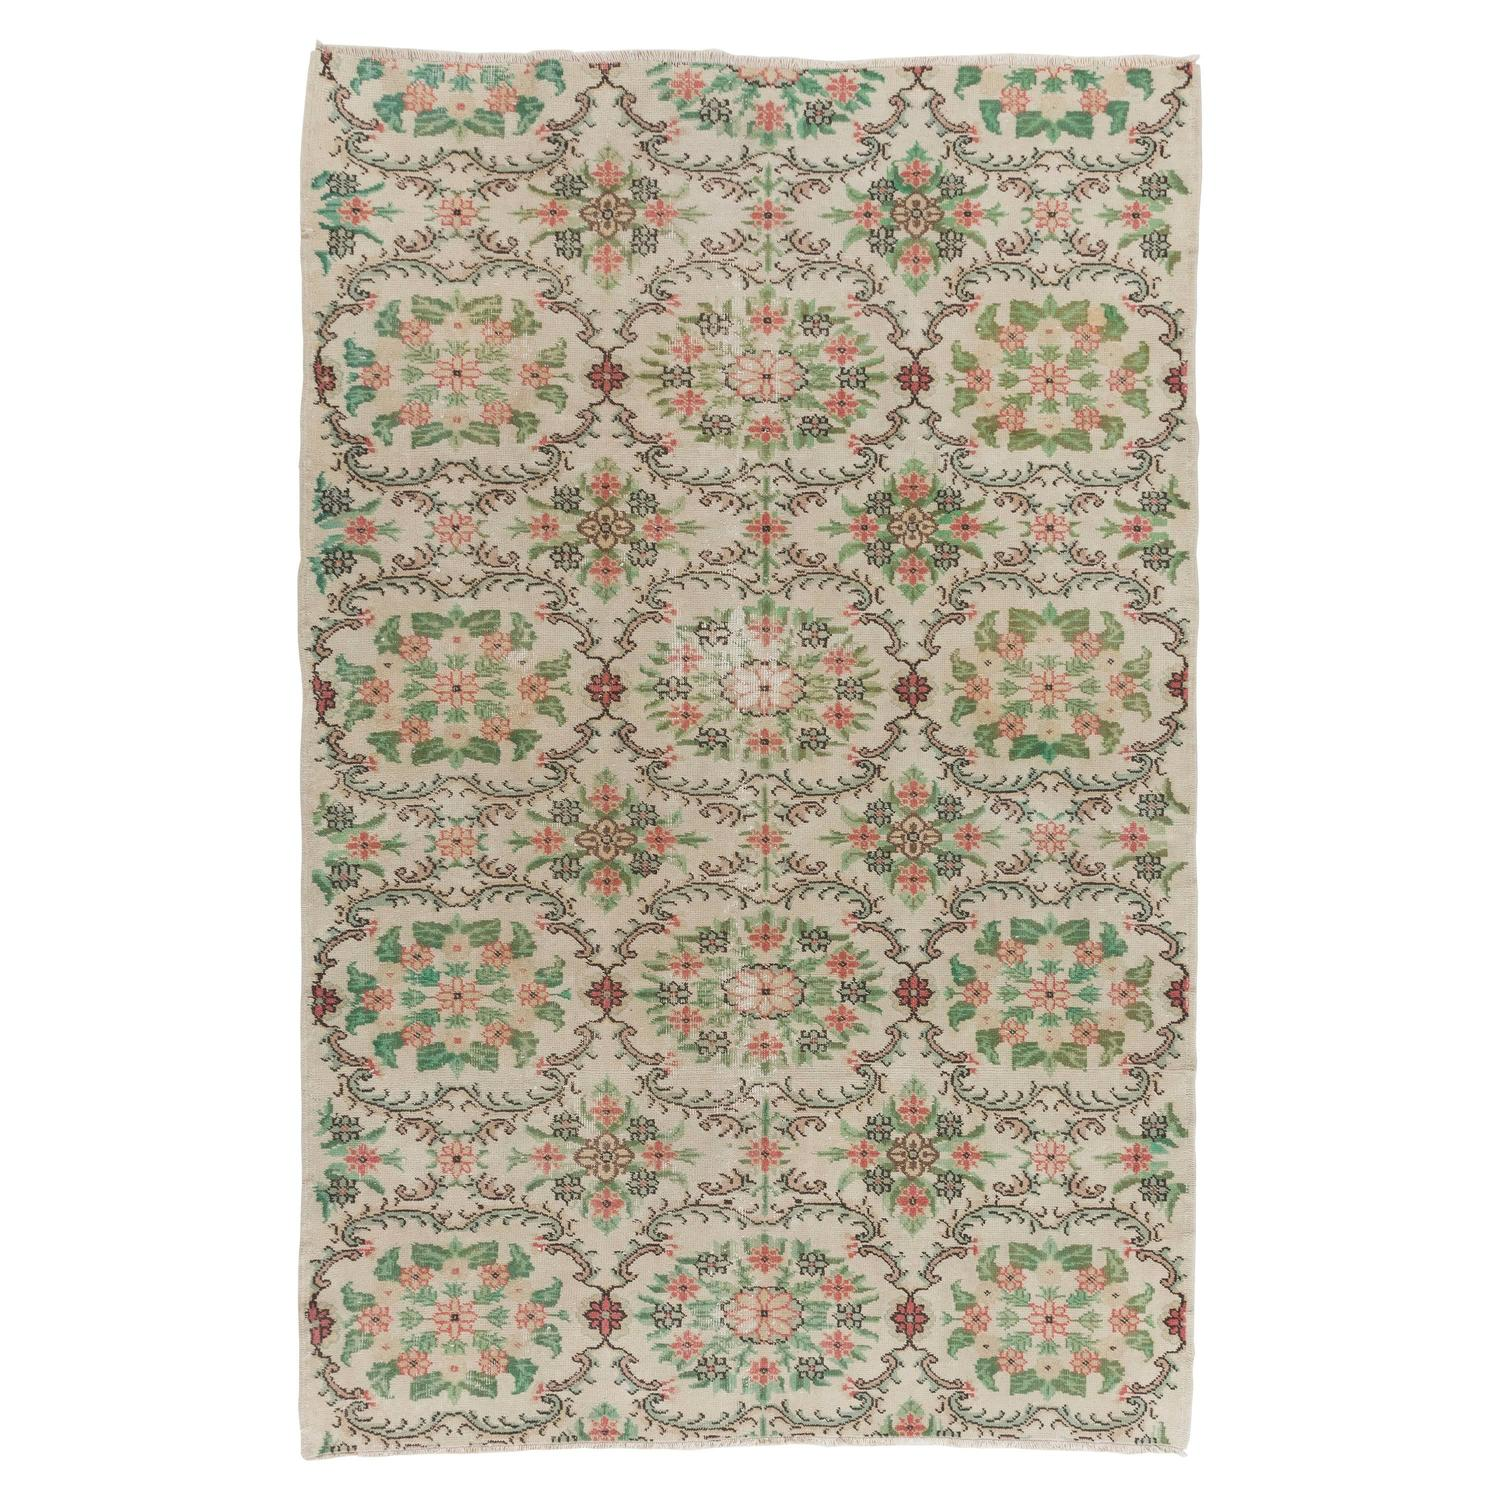 Floral Mid-Century Anatolian Rug In Soft Pink, Green And